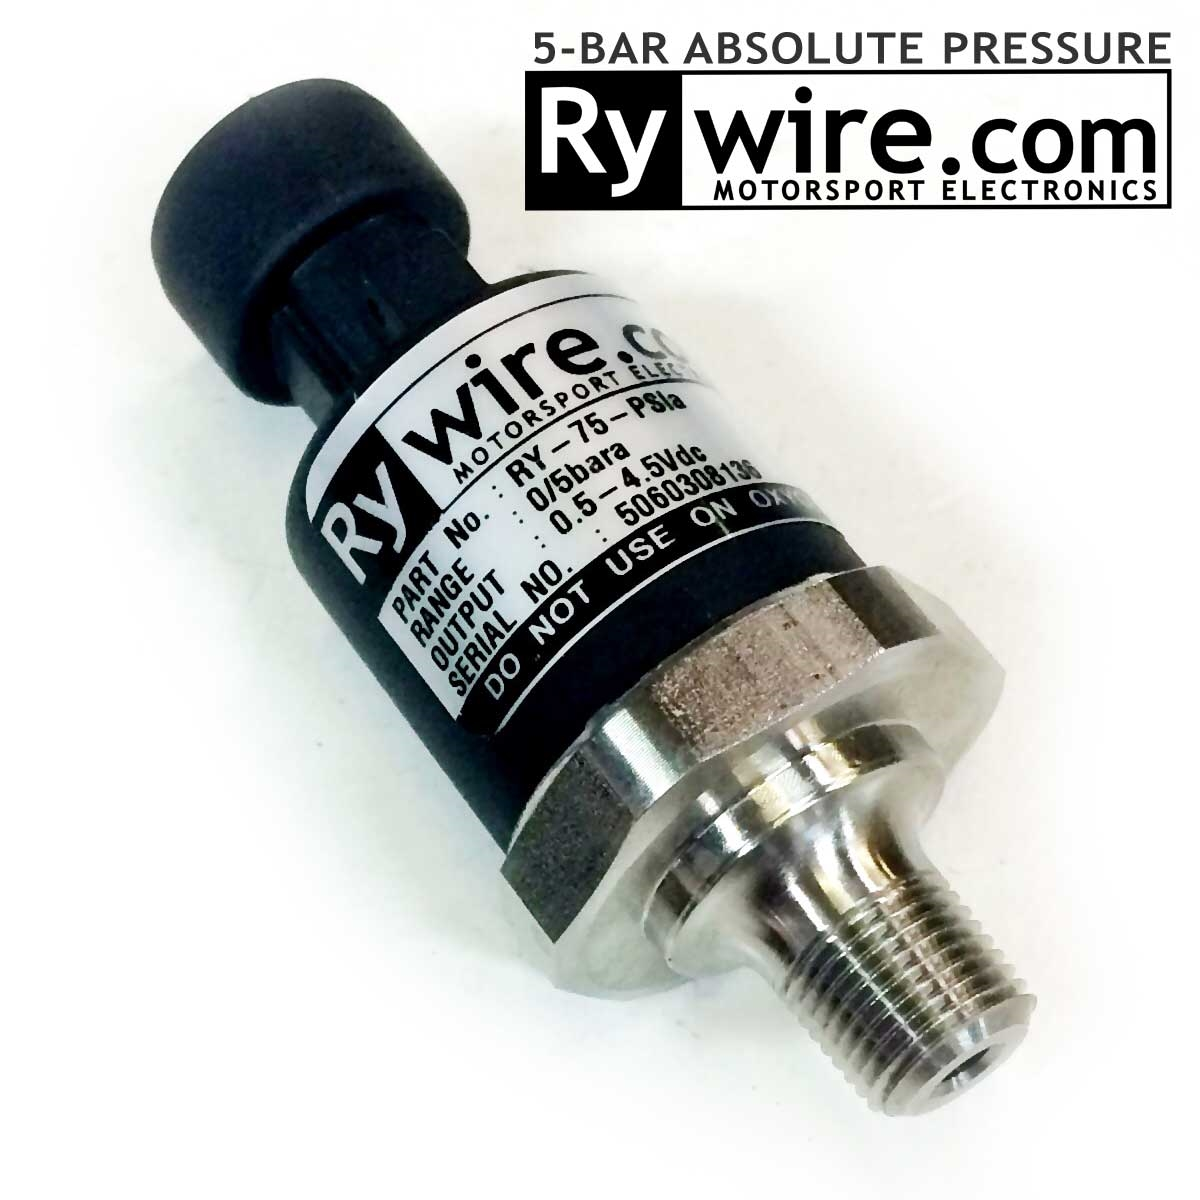 hight resolution of rywire motorsport electronics